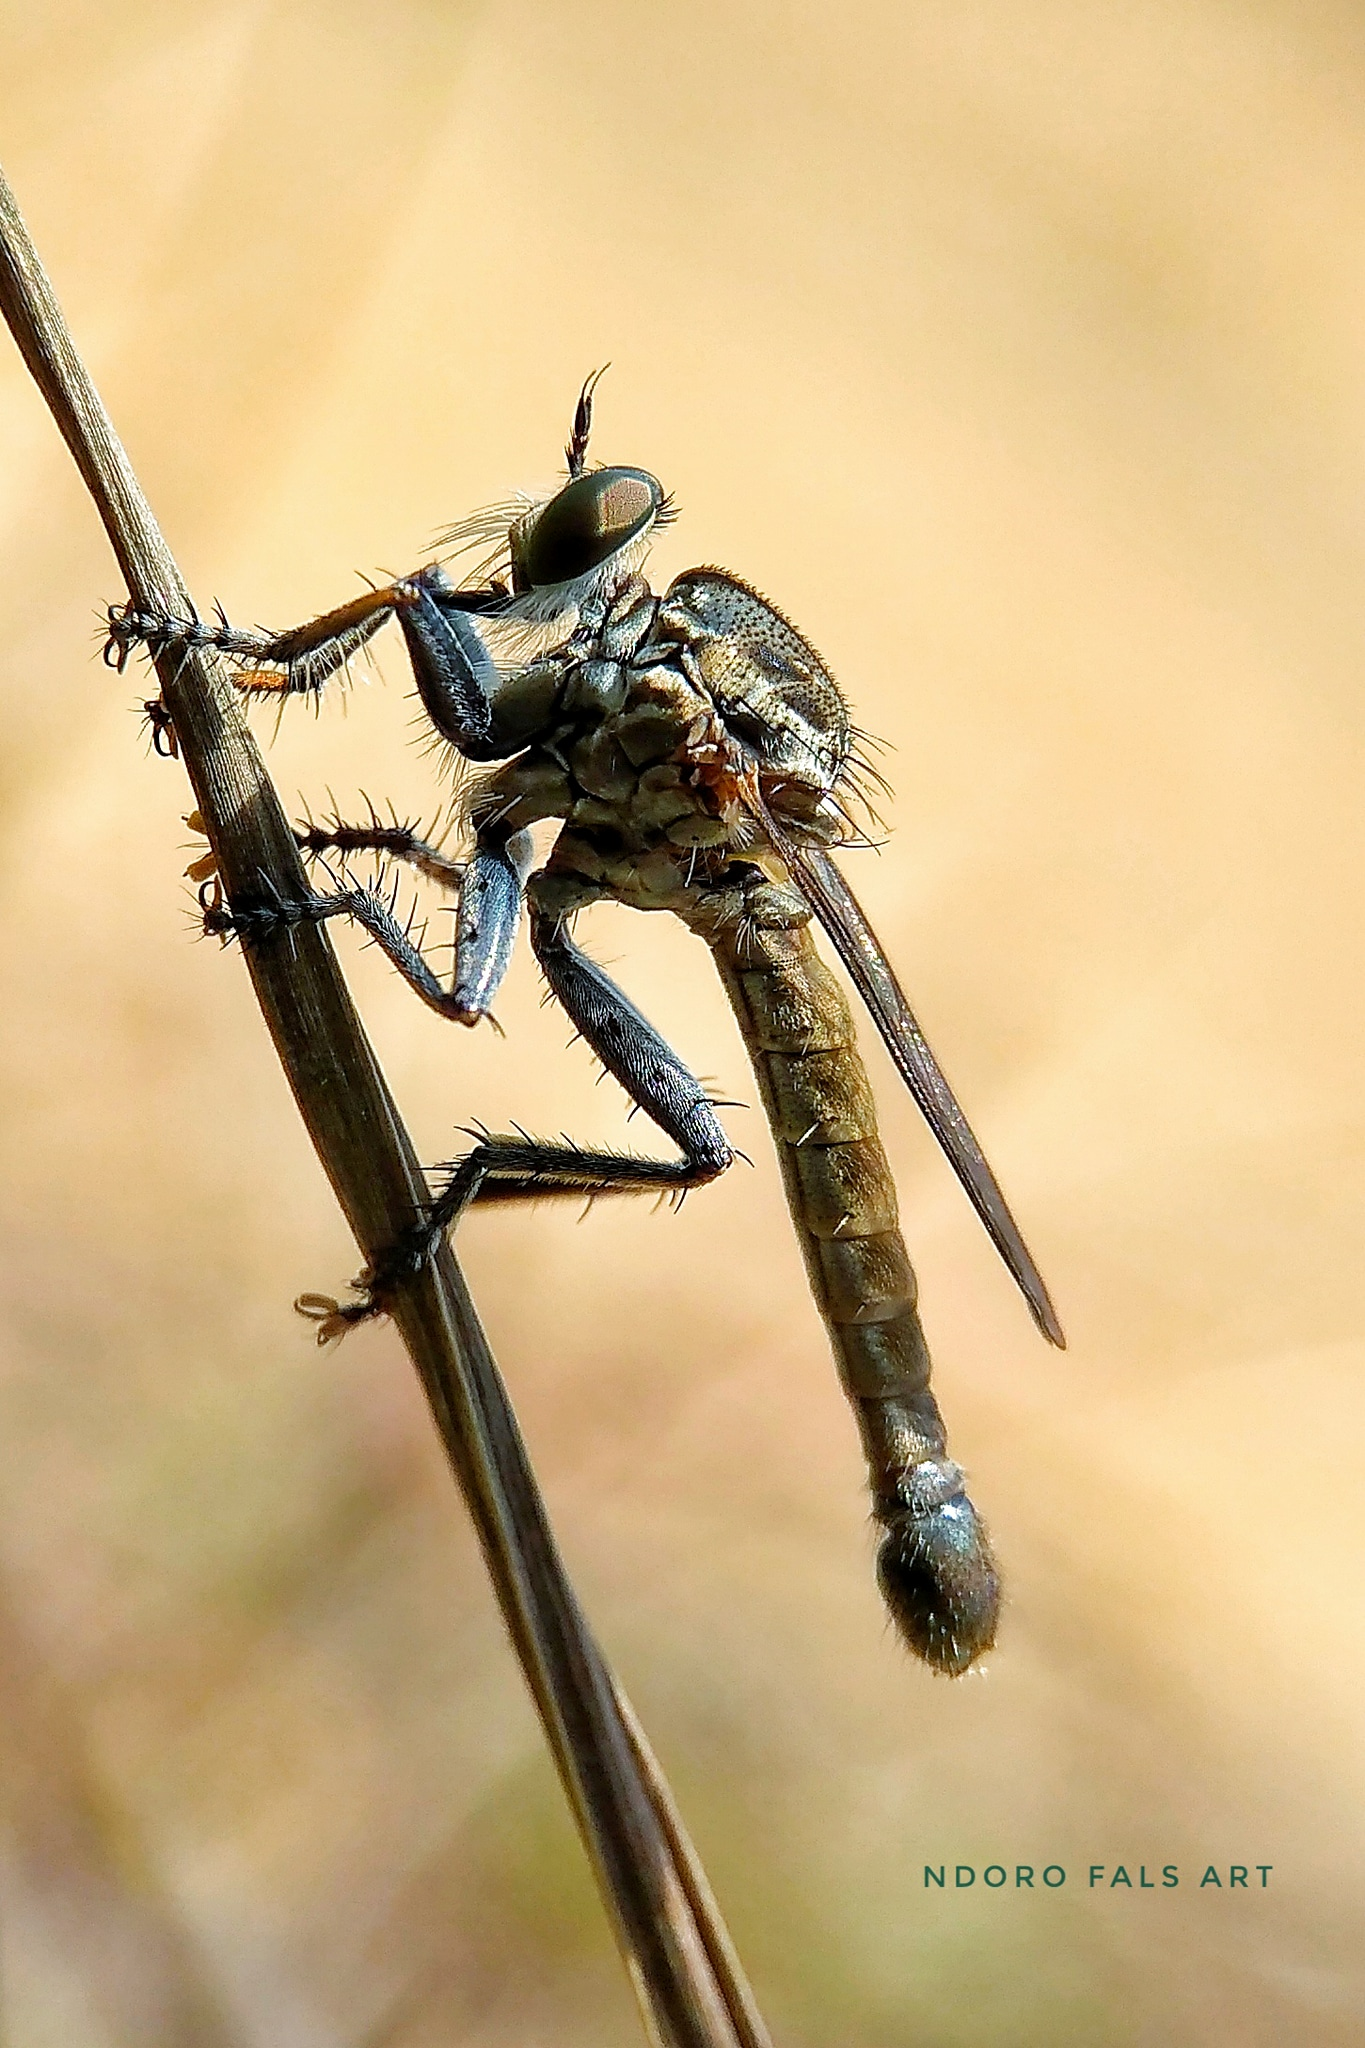 ROBBER FLY ON GARDEN Redmi 4a+lens Snapseed lamteng-INDONESIA 02.03.2018